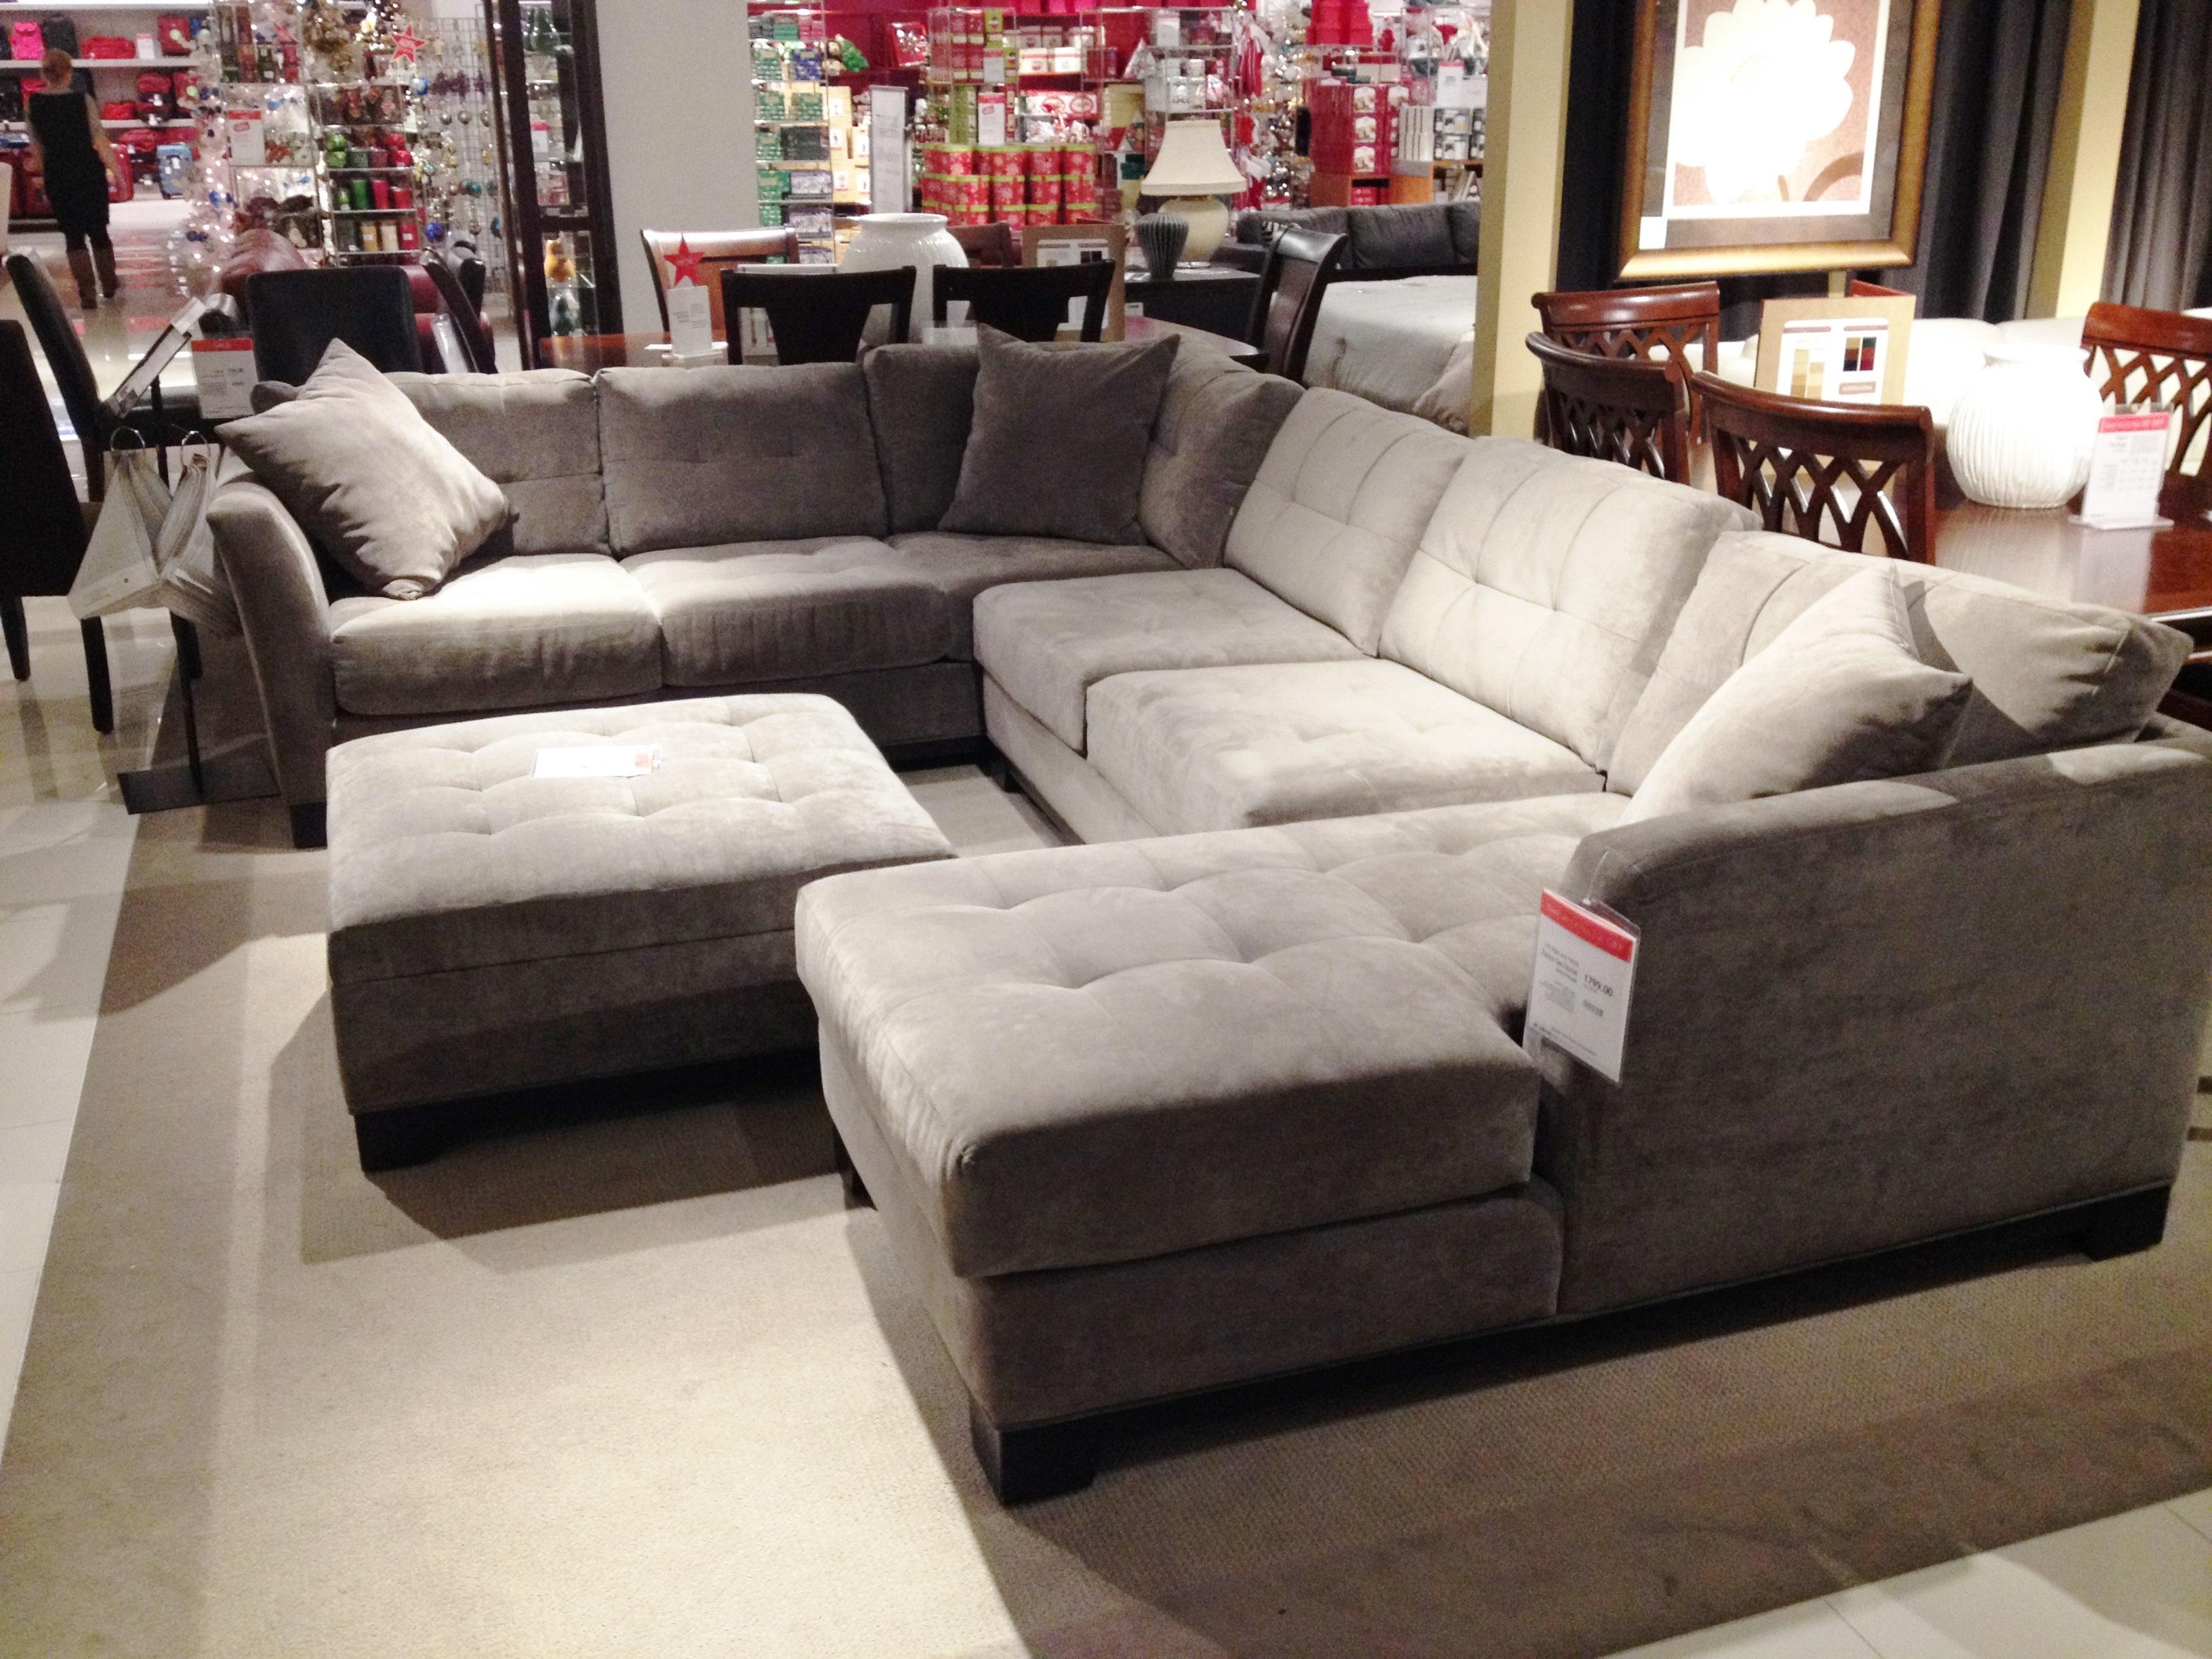 macy s elliot sofa abrir cama beddinge 20 top macys sectional ideas